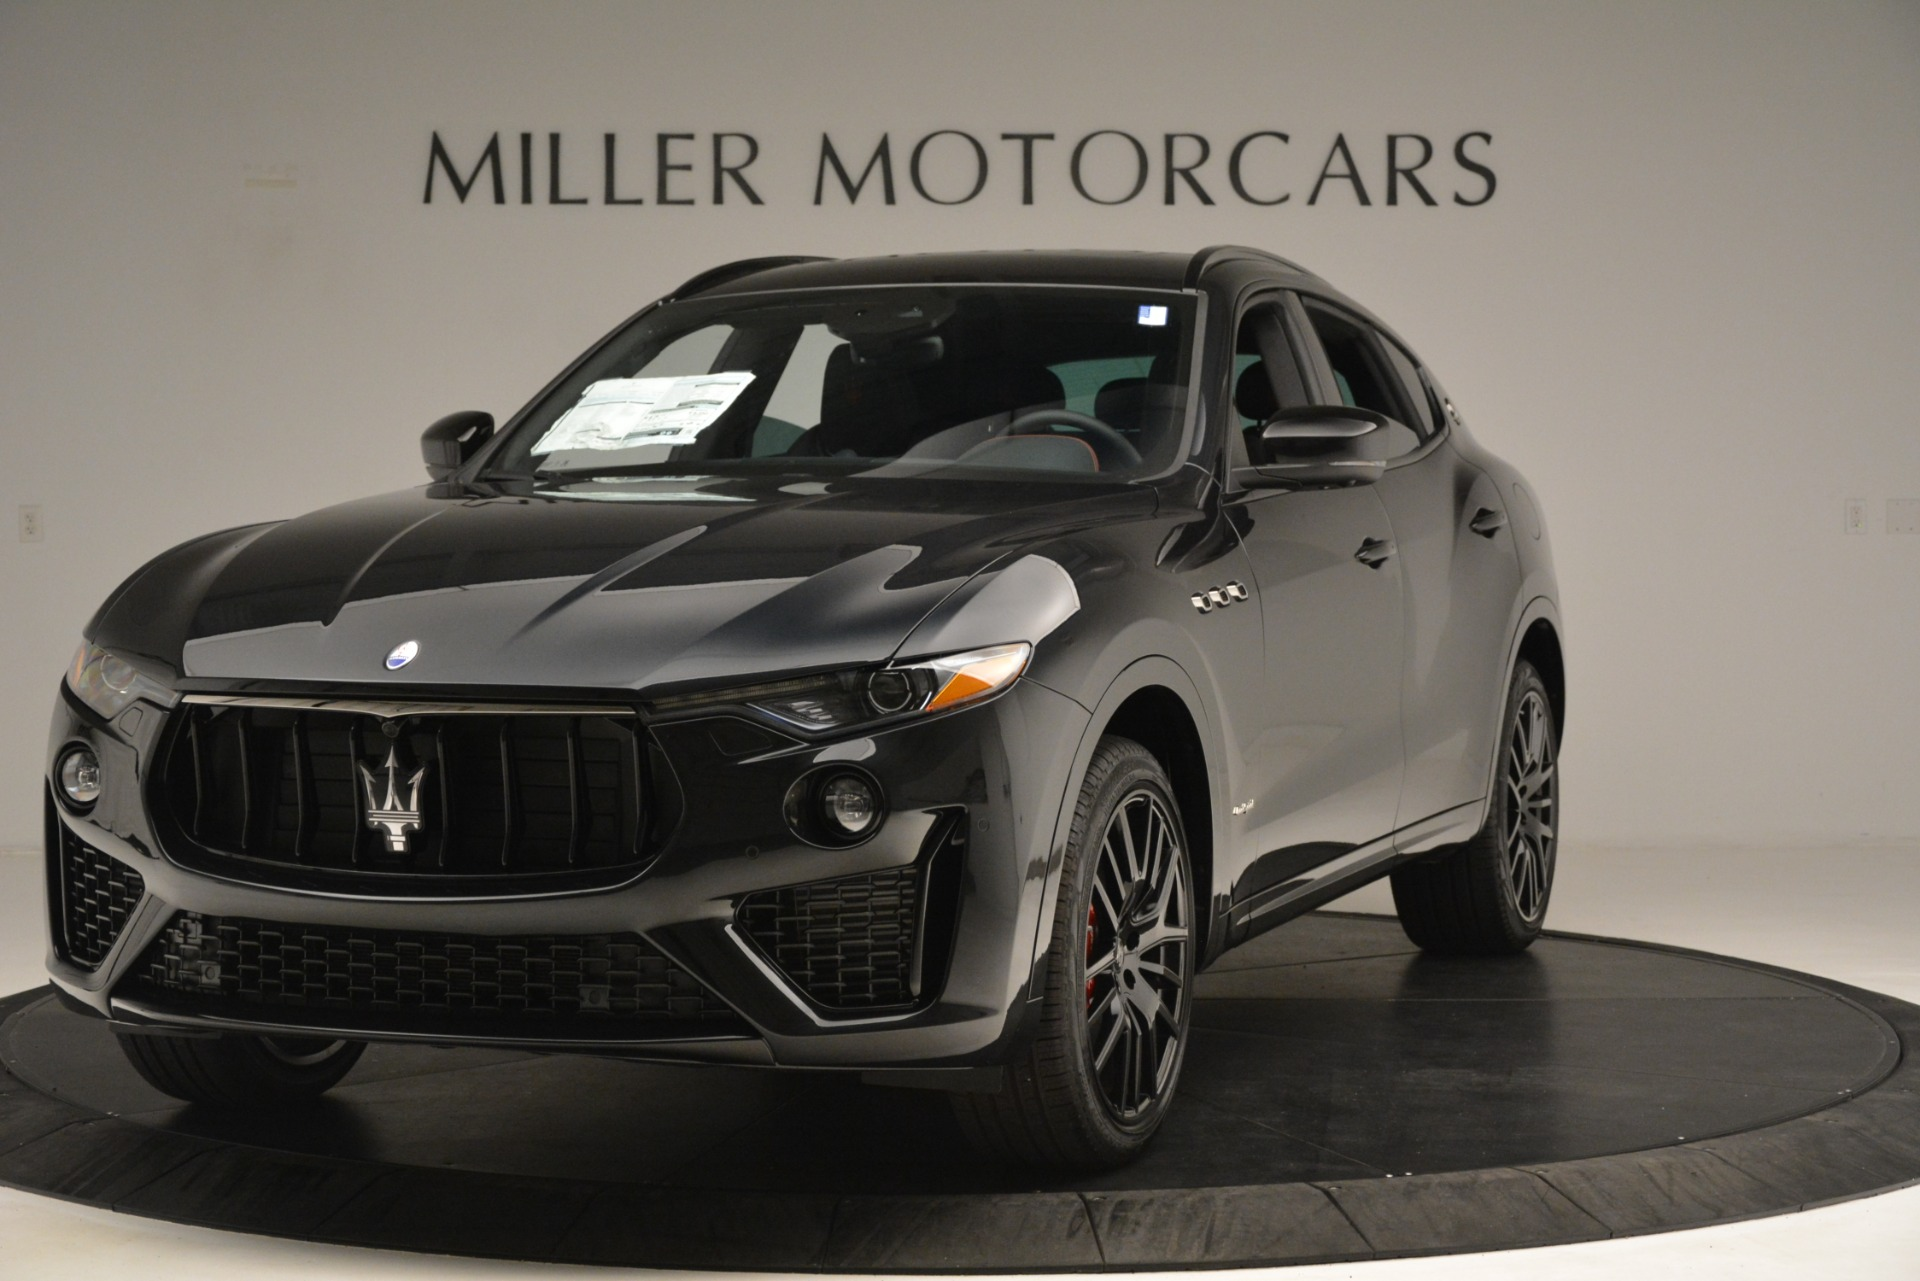 New 2019 Maserati Levante SQ4 GranSport Nerissimo for sale Sold at Maserati of Westport in Westport CT 06880 1